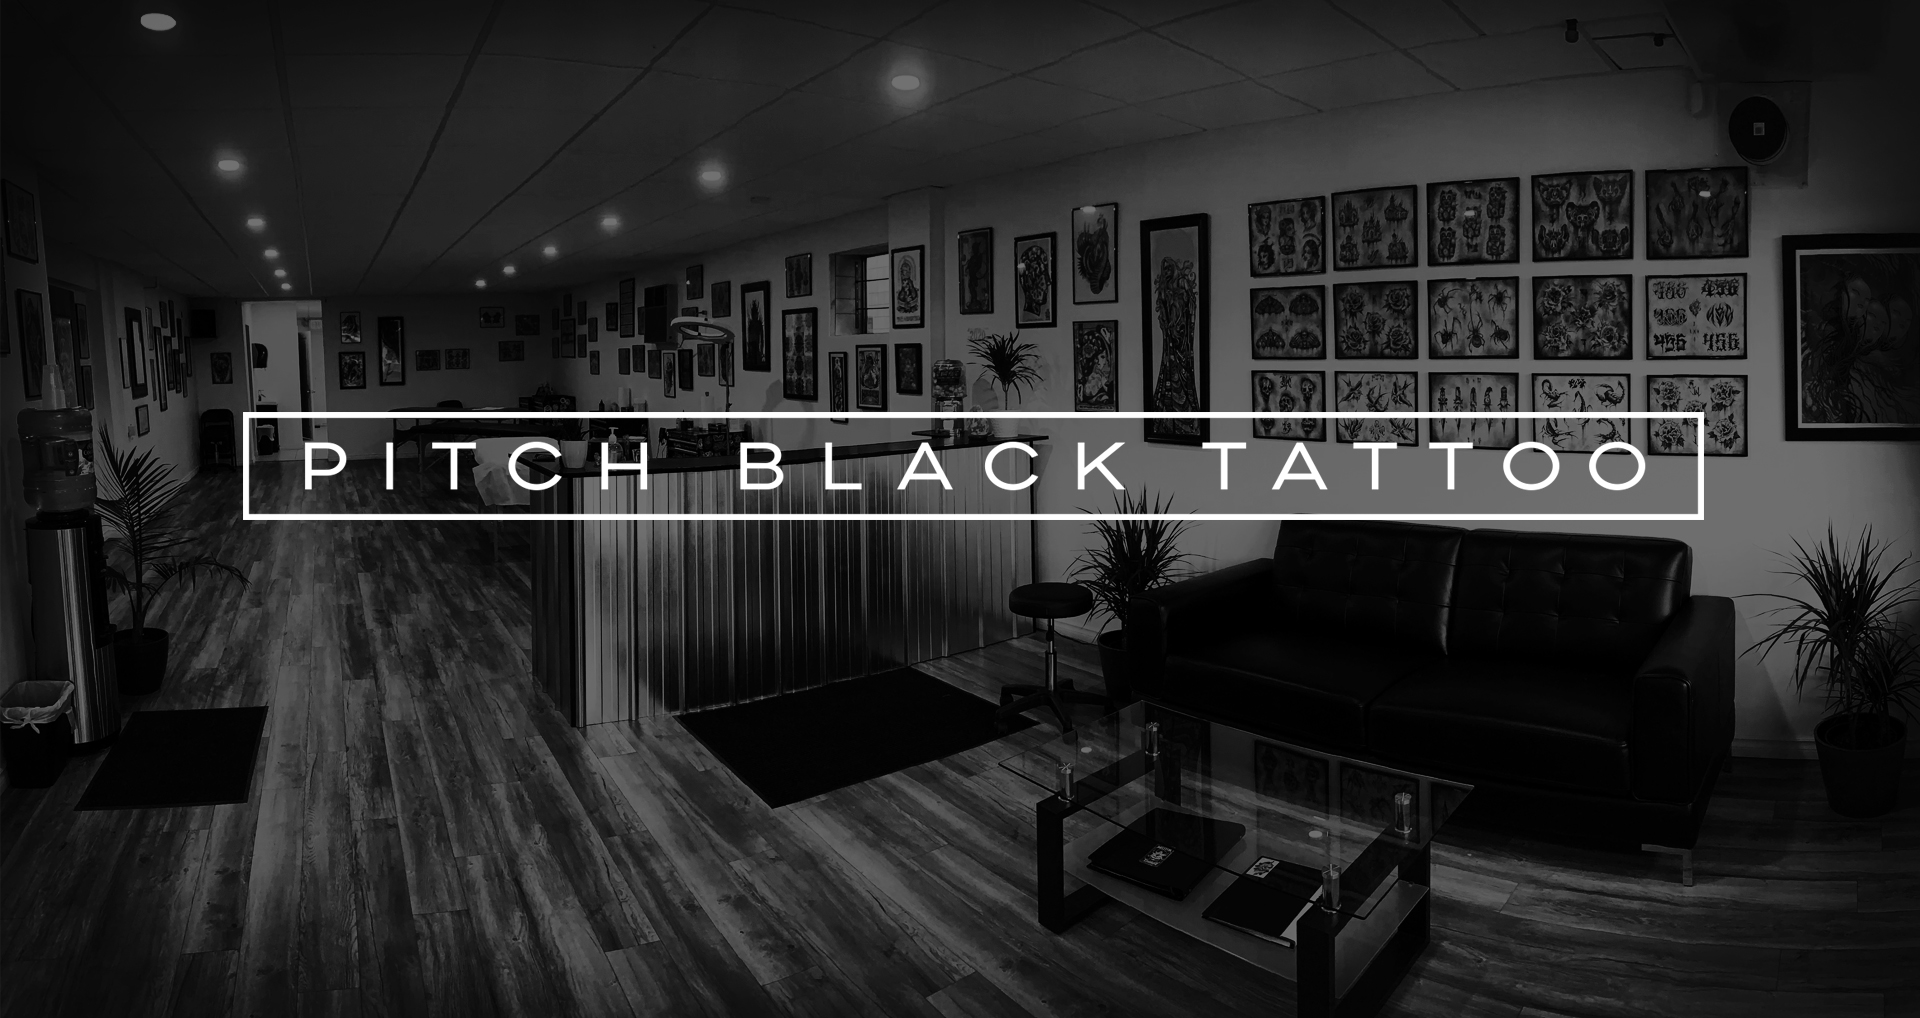 Pitch Black Tattoo 213 Rutland Rd N, Kelowna